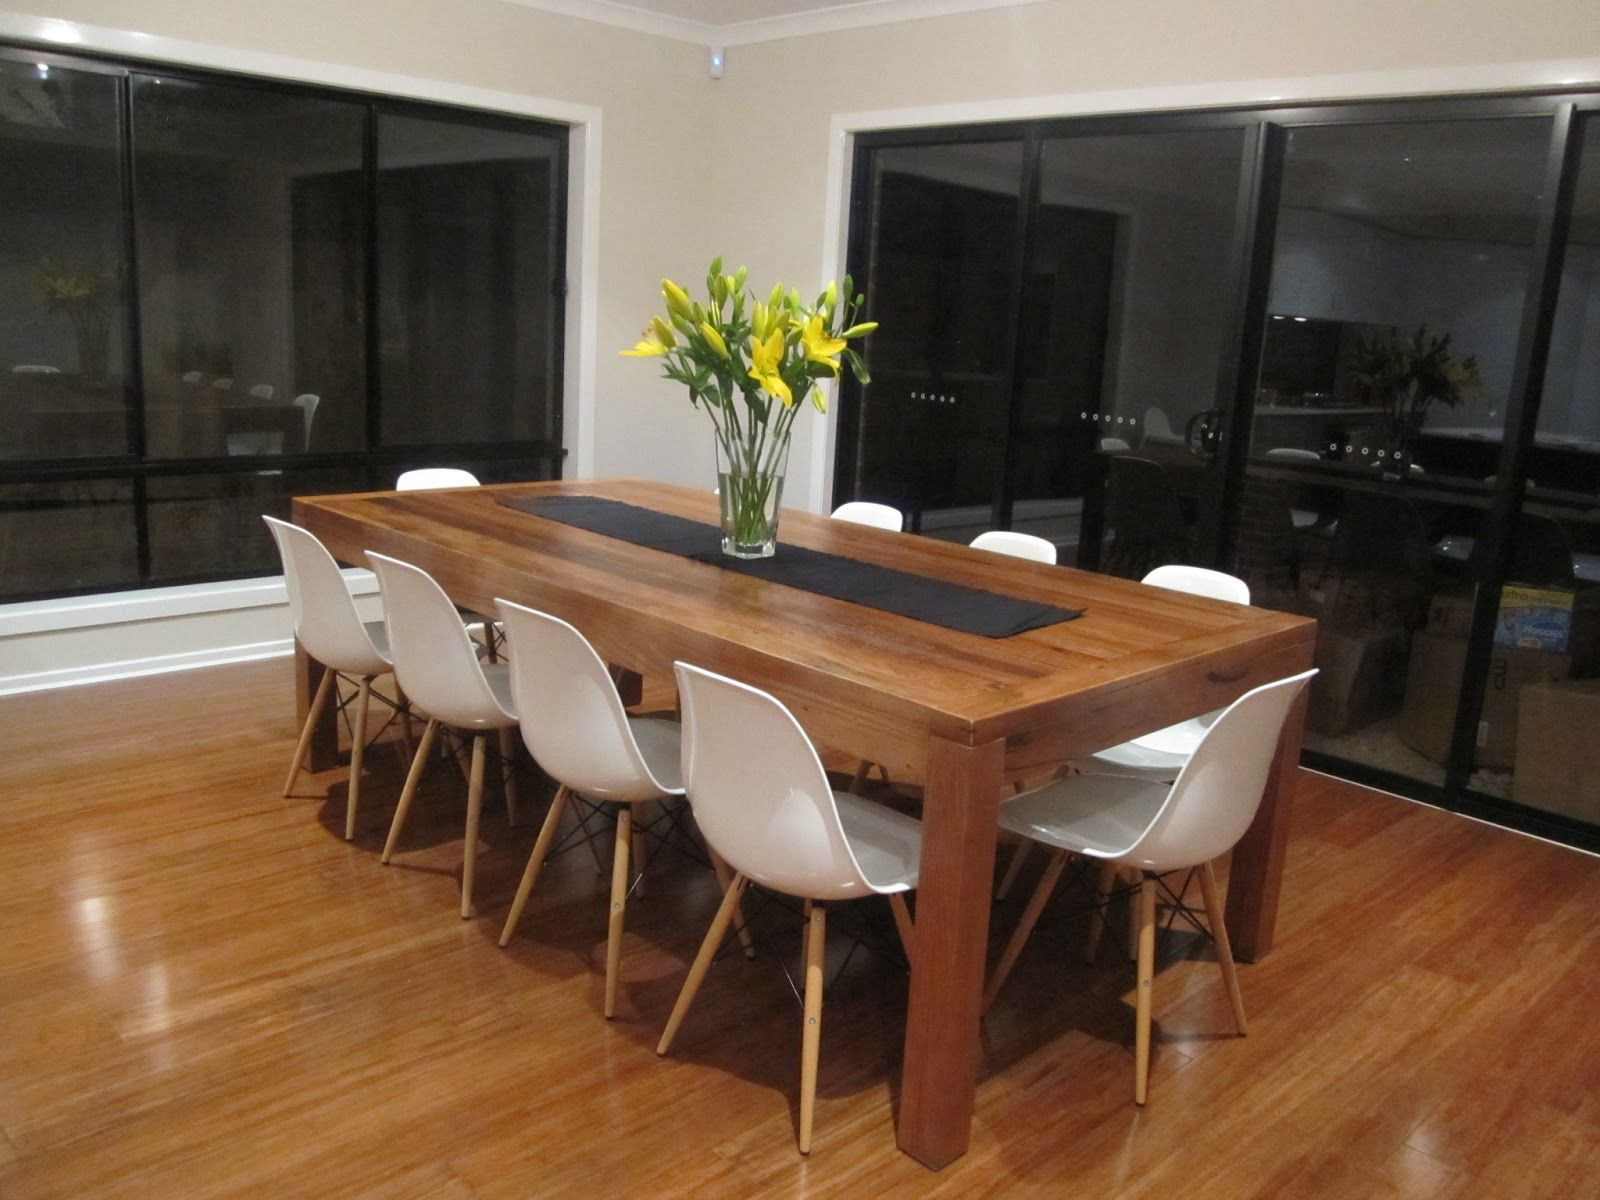 Kitchen Furniture Melbourne Timber Dining Table White Chairs Wood Furniture Stores Melbourne